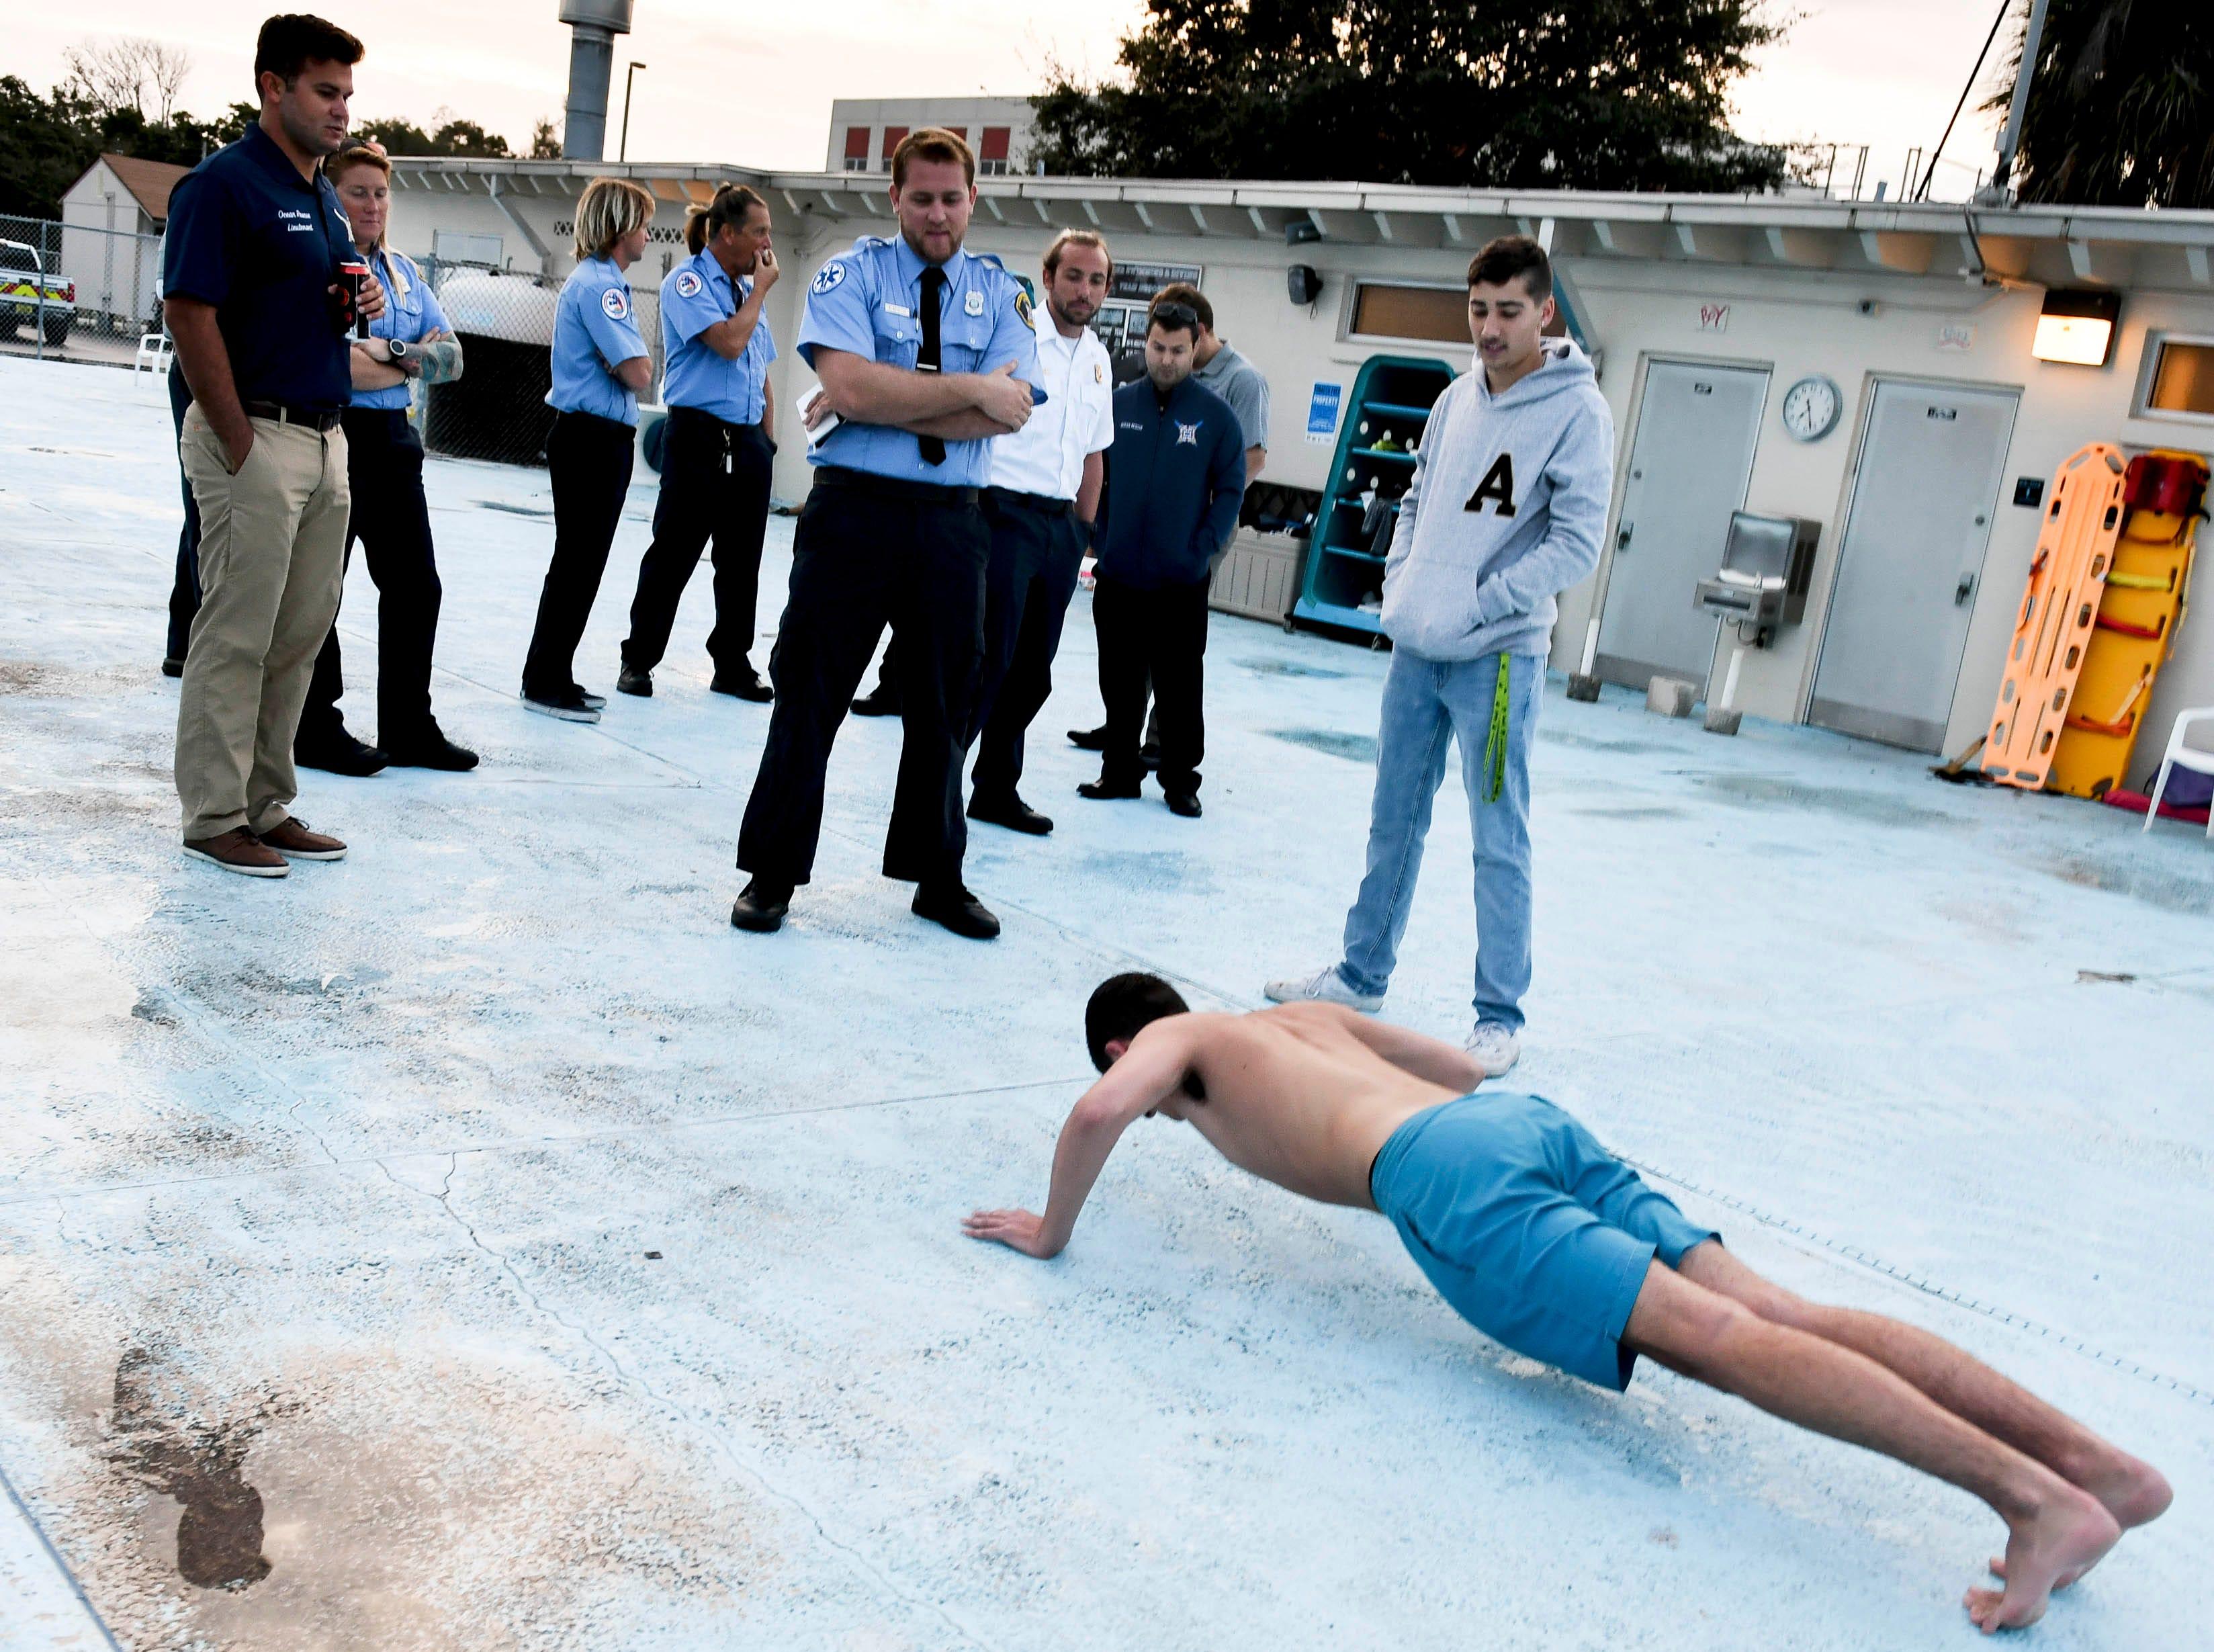 Lifeguards watch as Nicholas Forney does pushups as part of his tryout for a lifeguard position early Saturday morning.